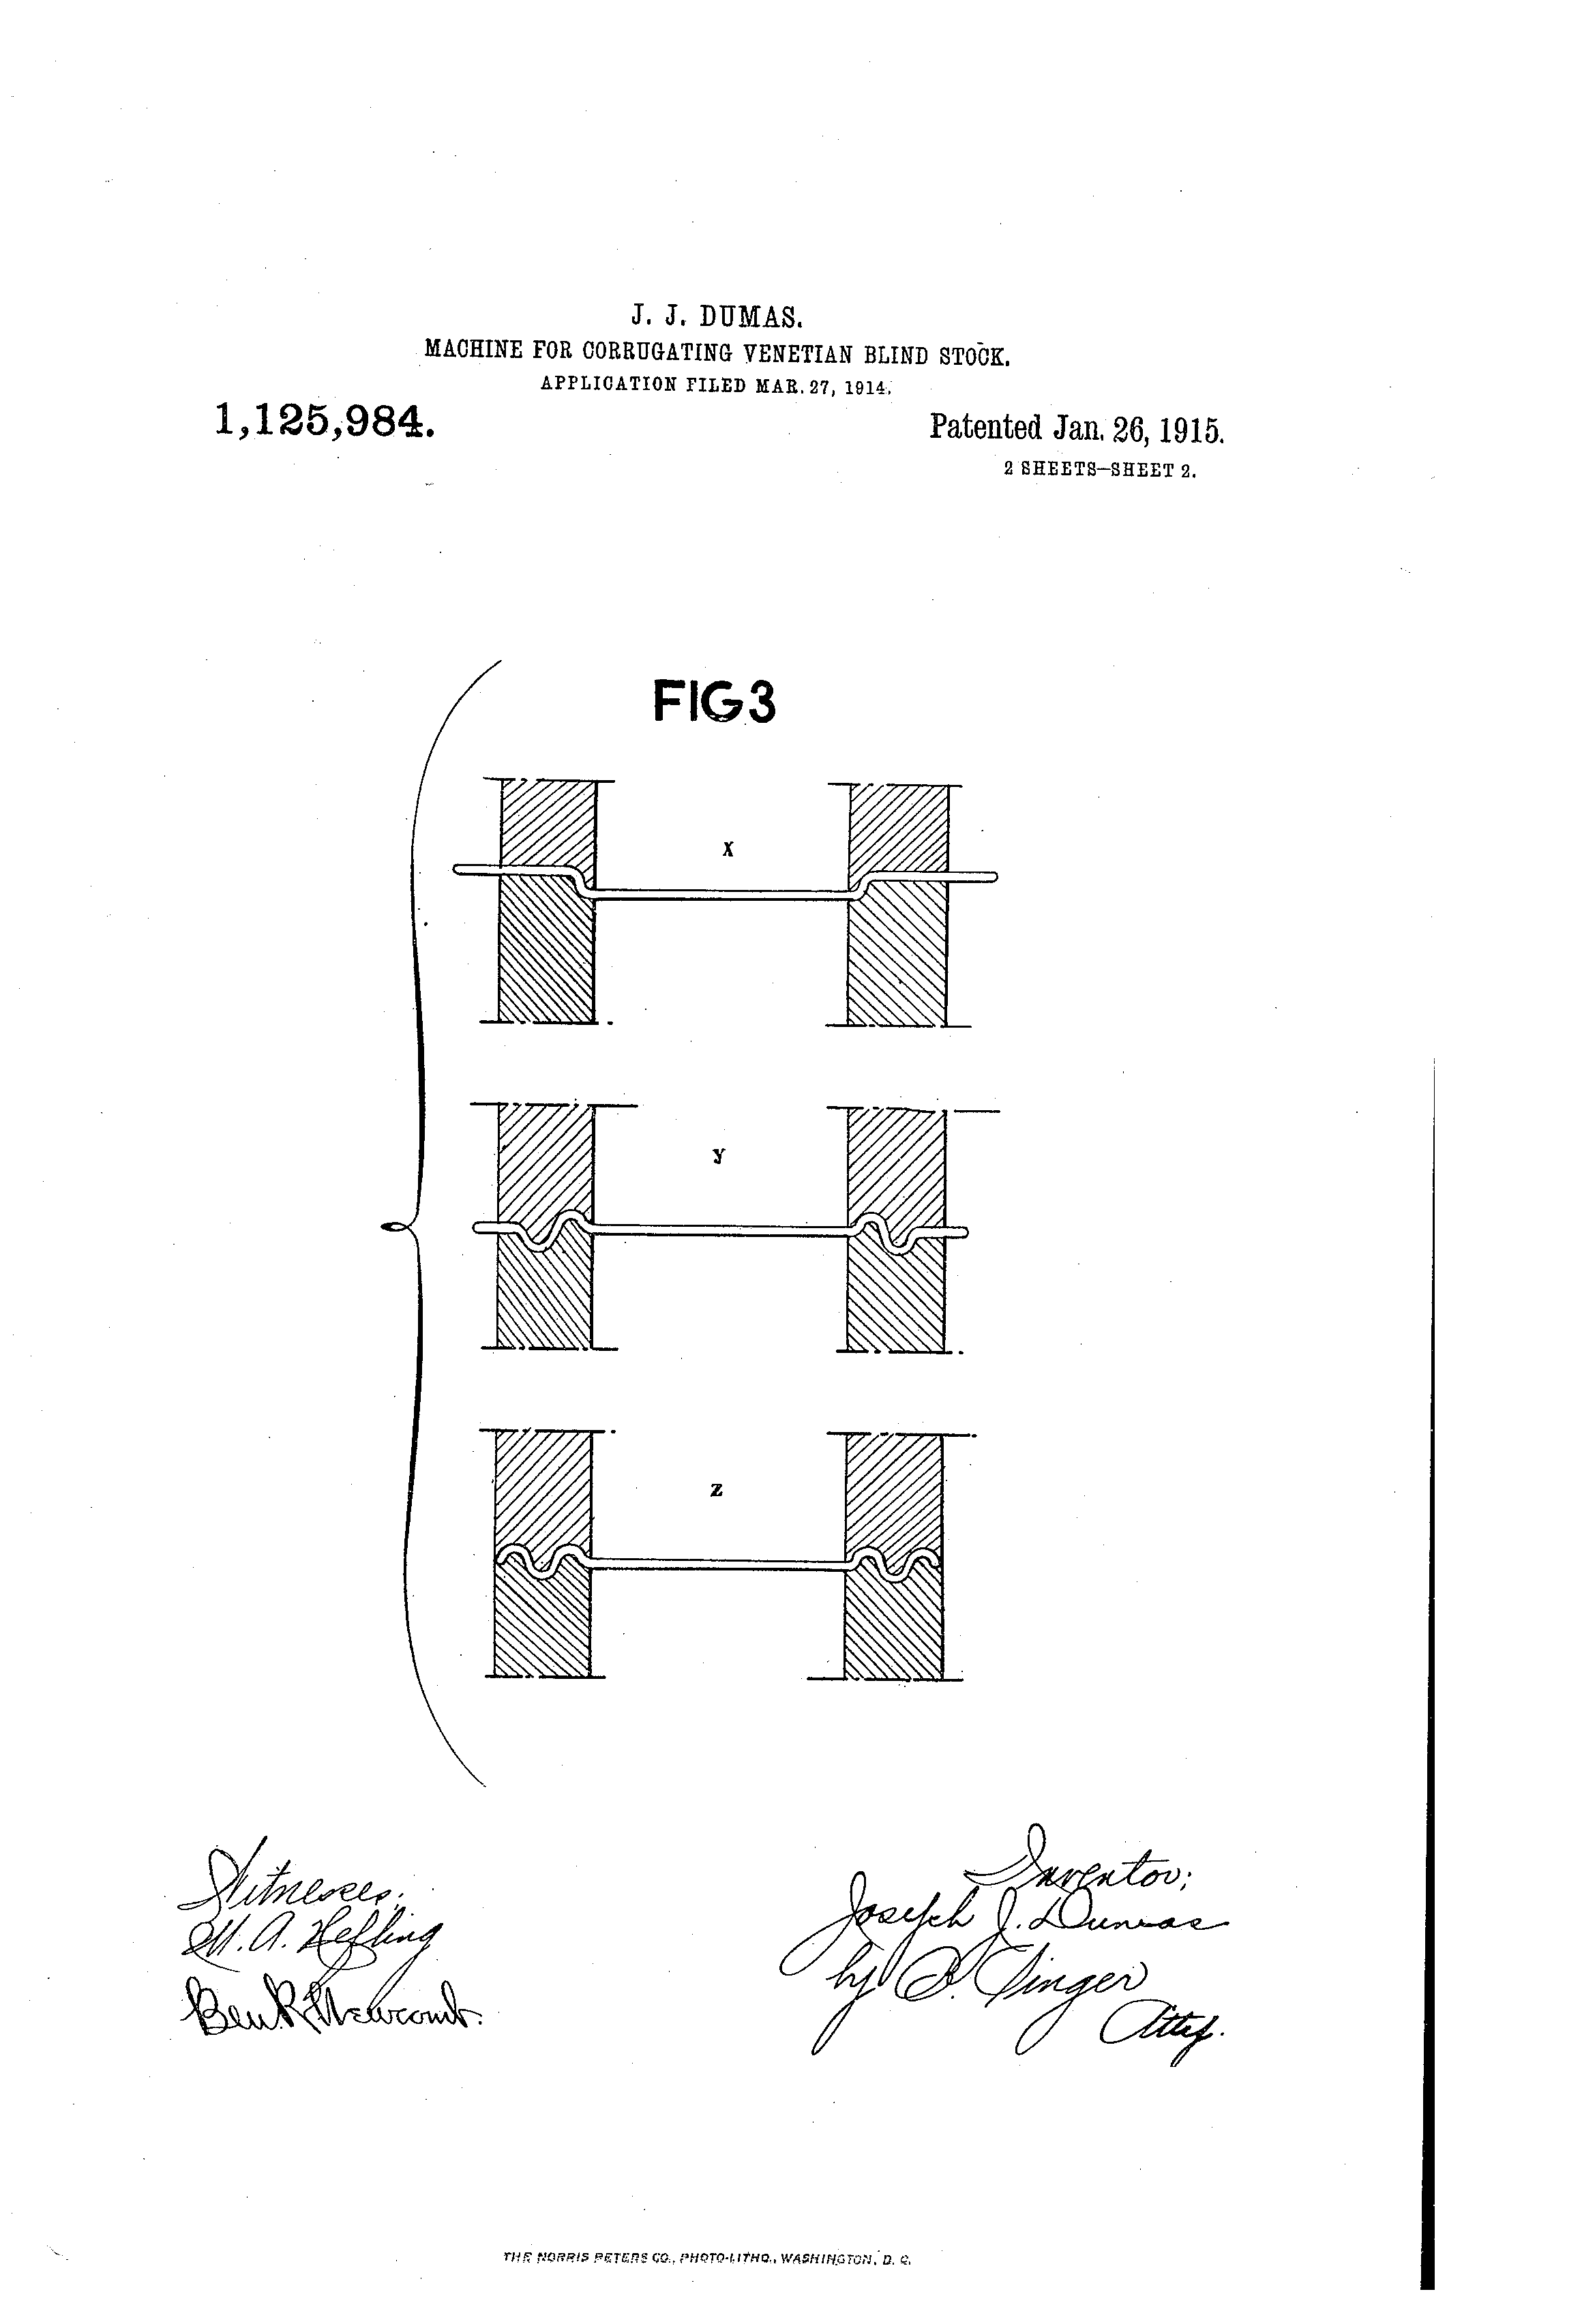 Patent US1125984 - Machine for corrugating venetian-blind stock